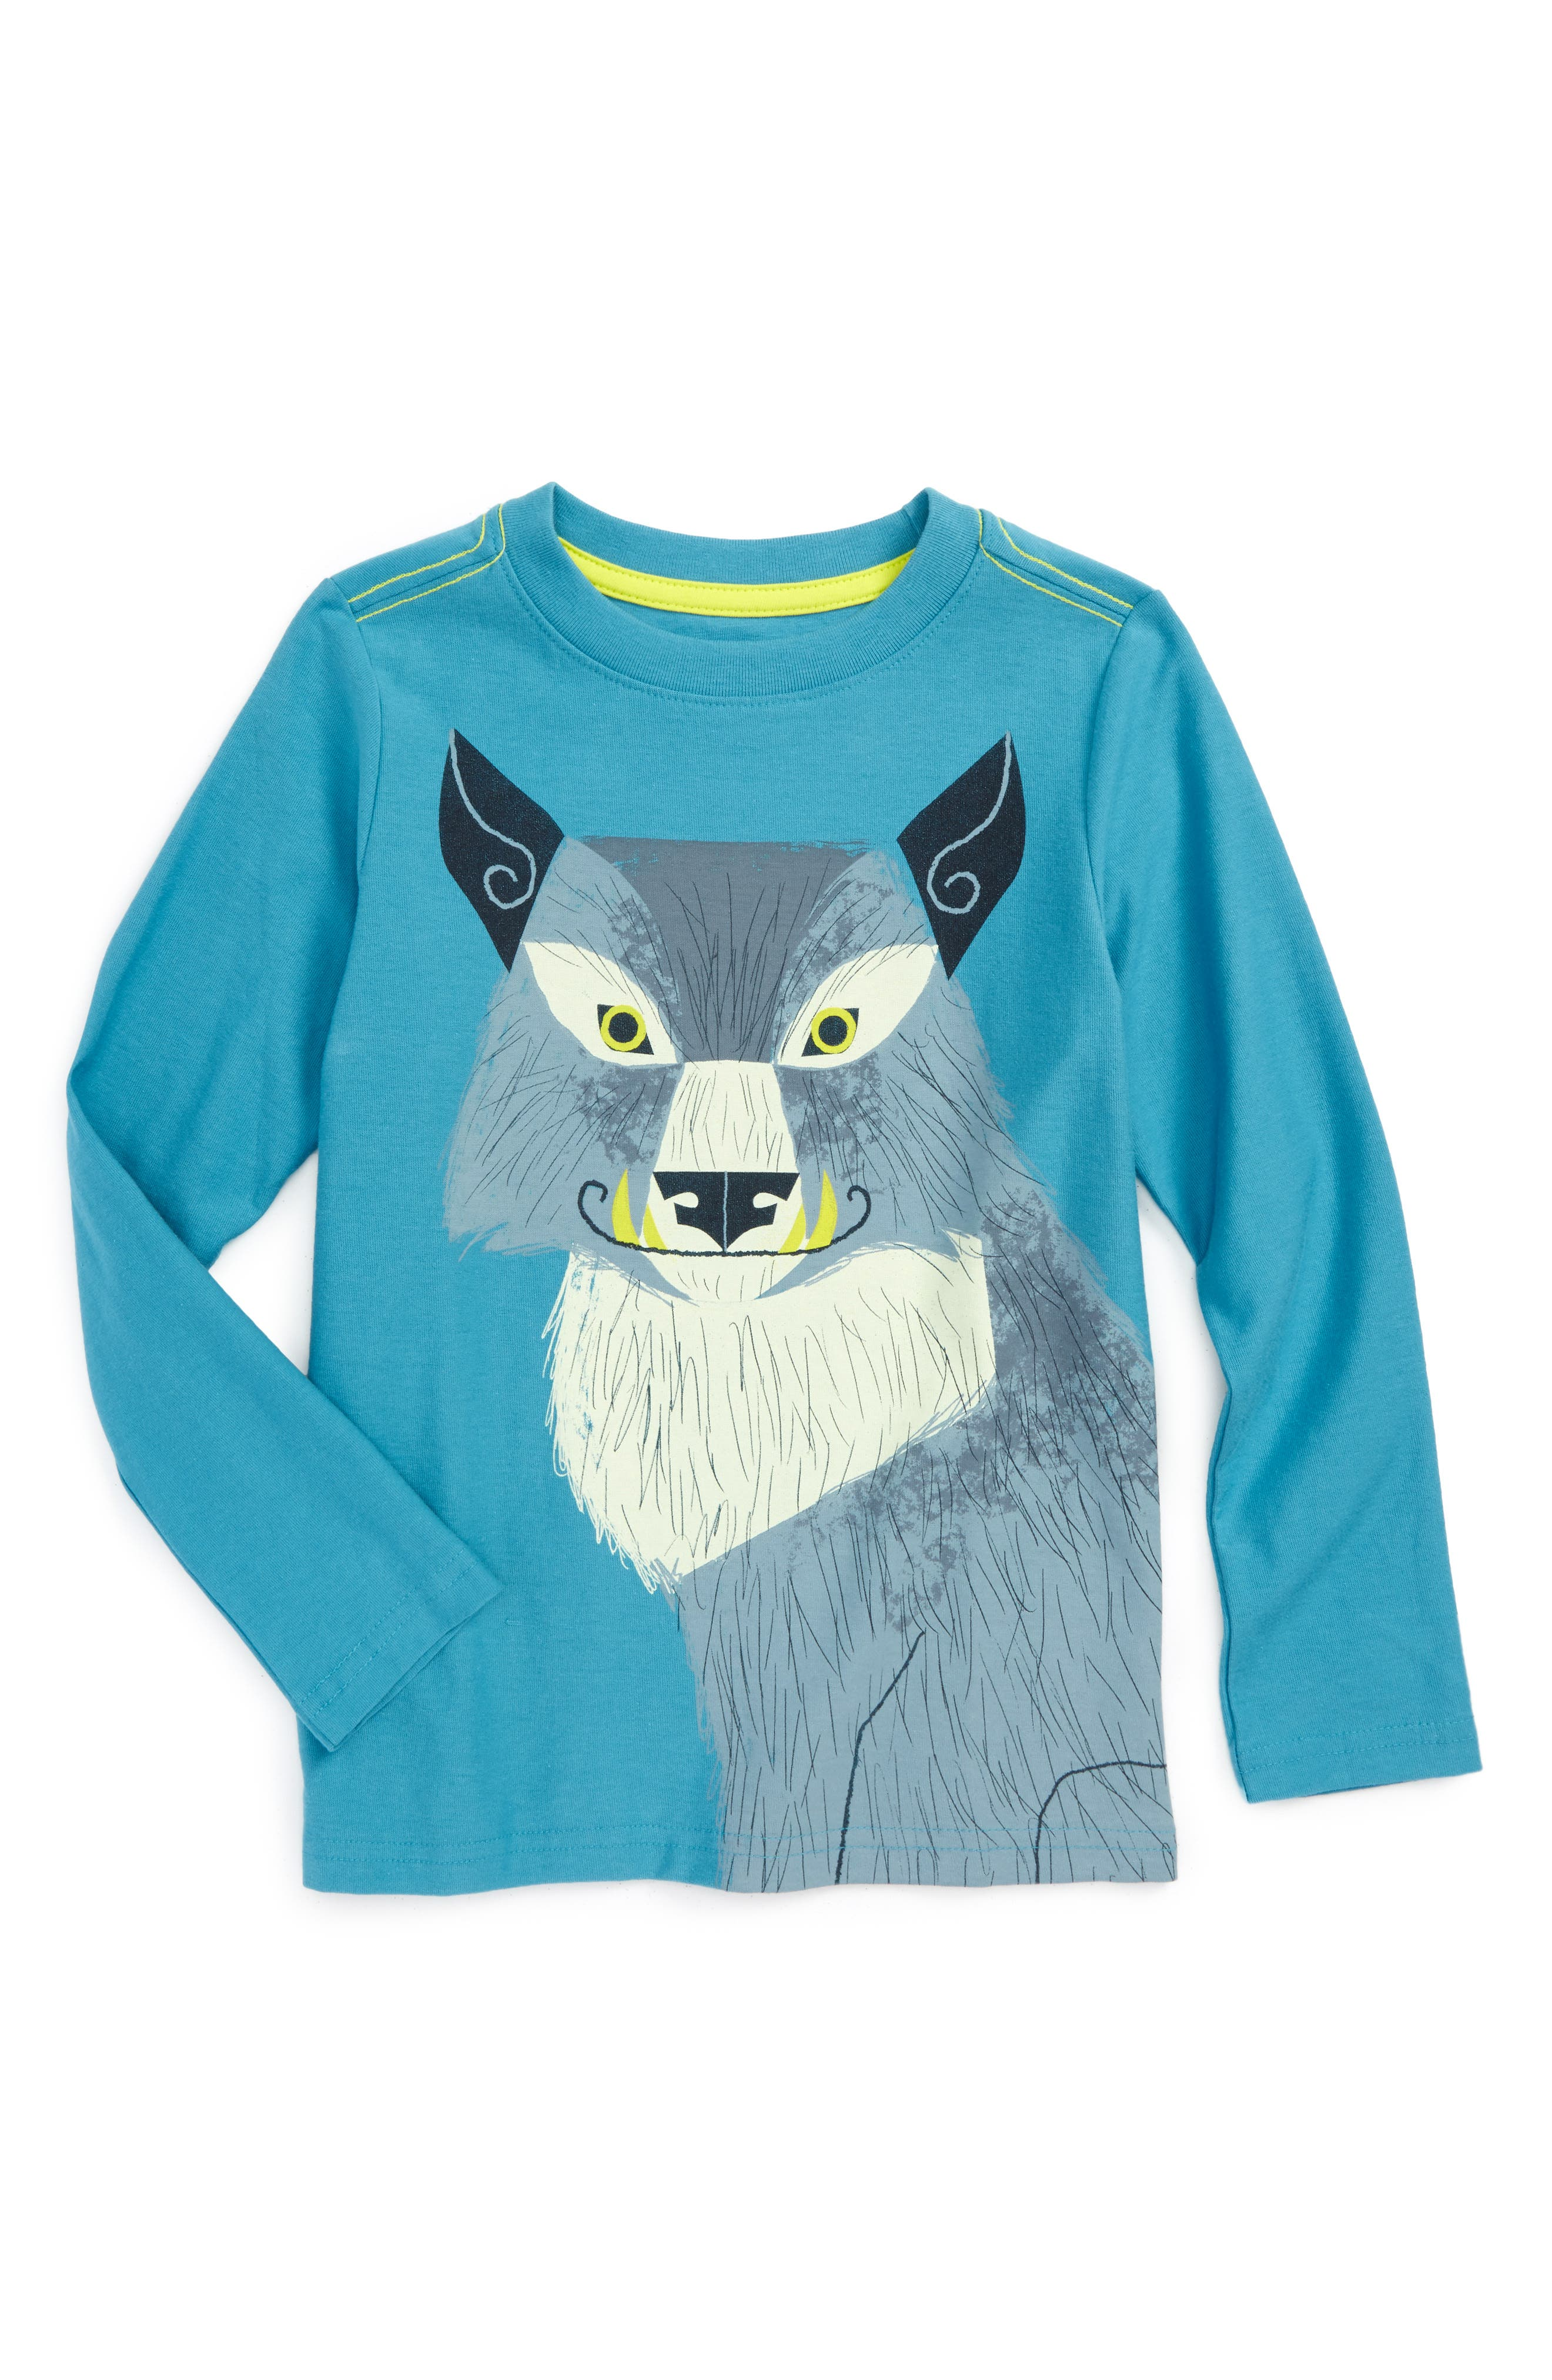 Wulver Graphic T-Shirt,                         Main,                         color, Turquoise